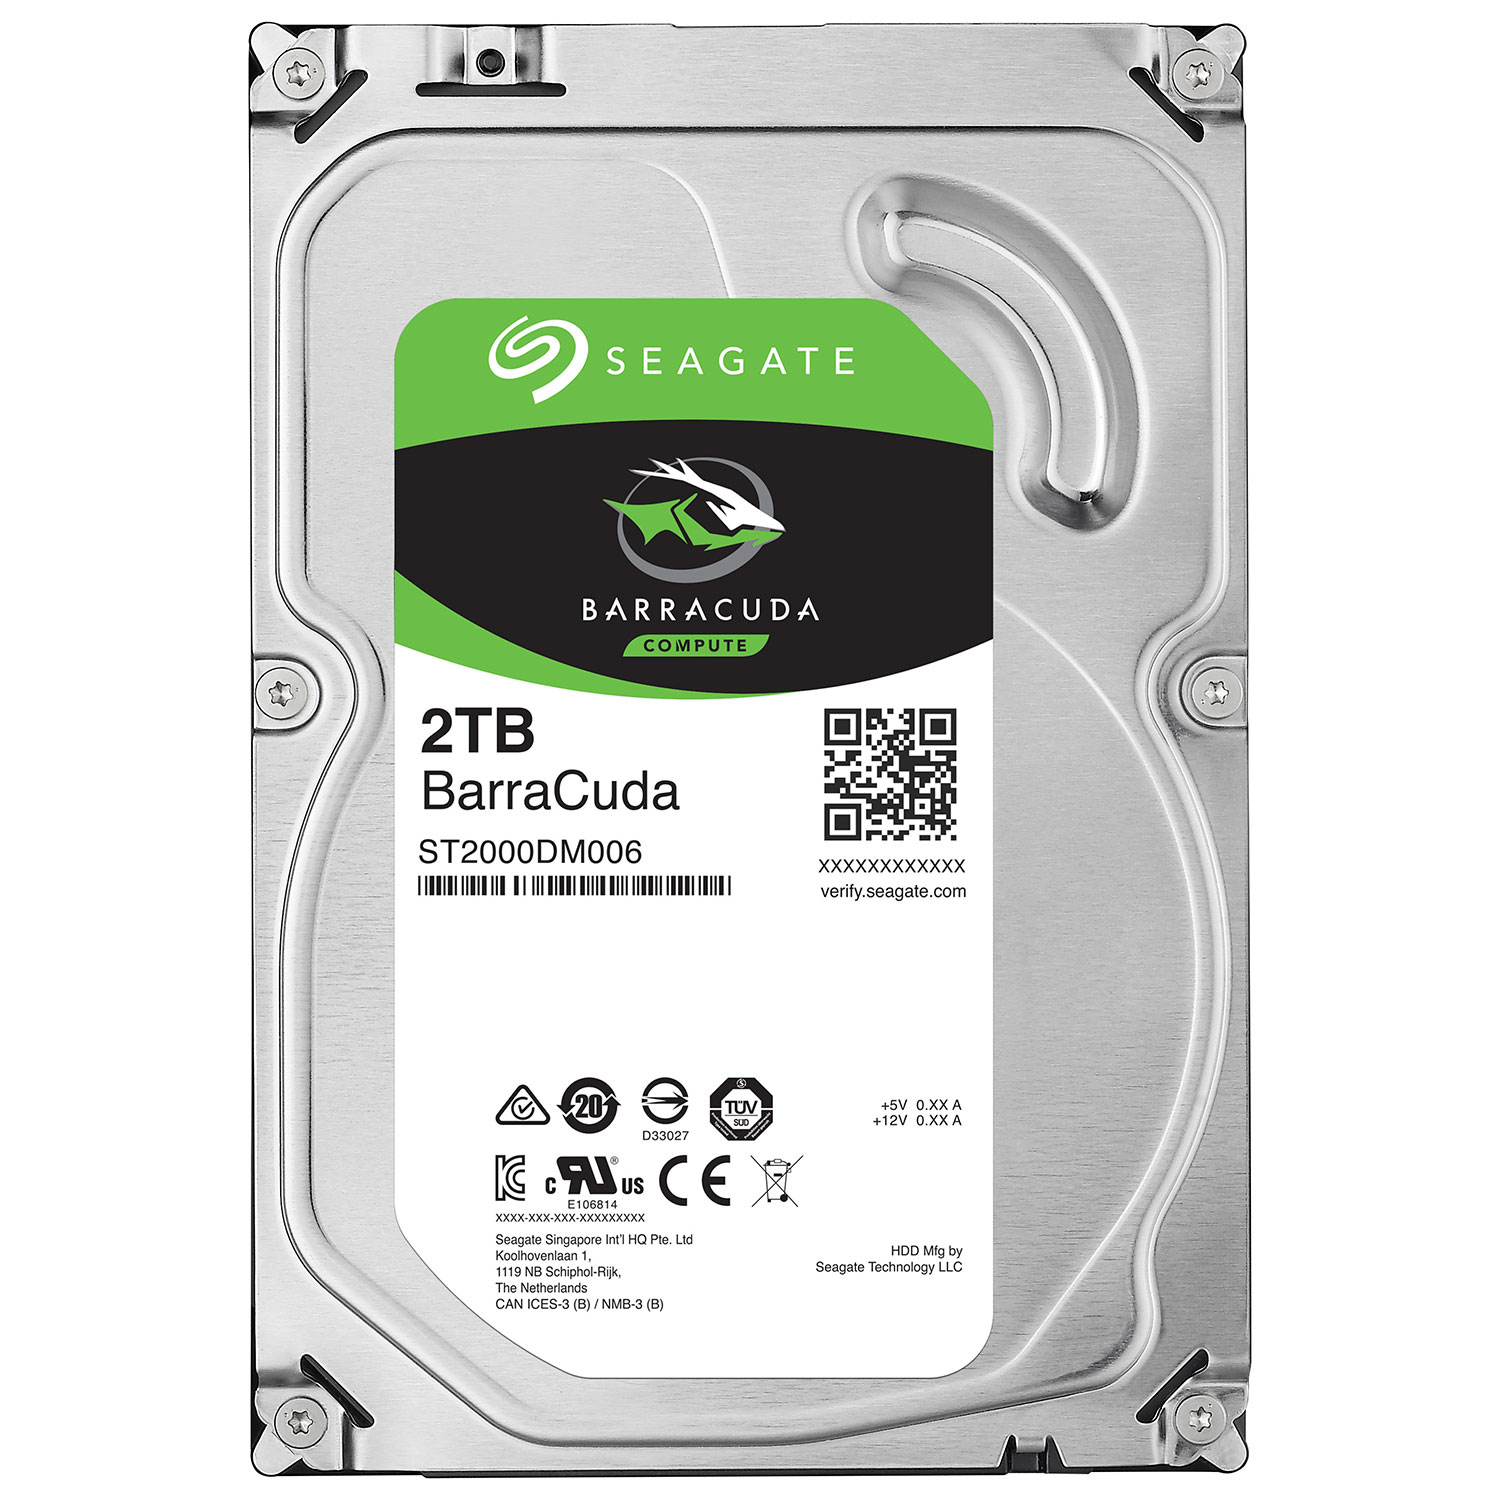 Internal Hard Drives Shop Storage Space For Your Pc Best Buy Canada Sony Playstation 3 120gb Hdd500gb 2 Stick Controller Seagate Barracuda 2tb 35 Desktop Drive